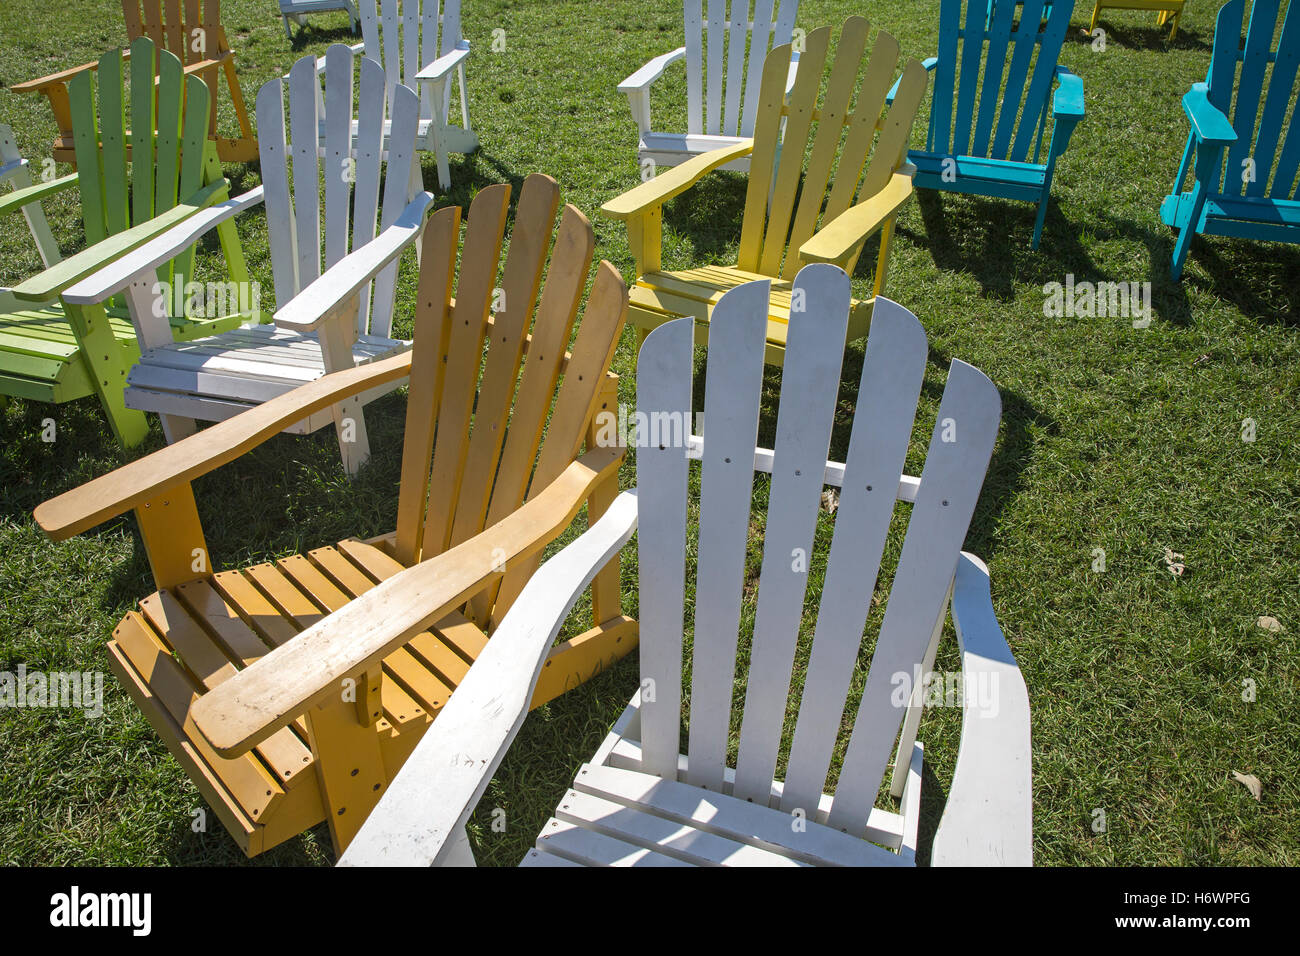 wood deck chairs painted in different colors on grass stock image